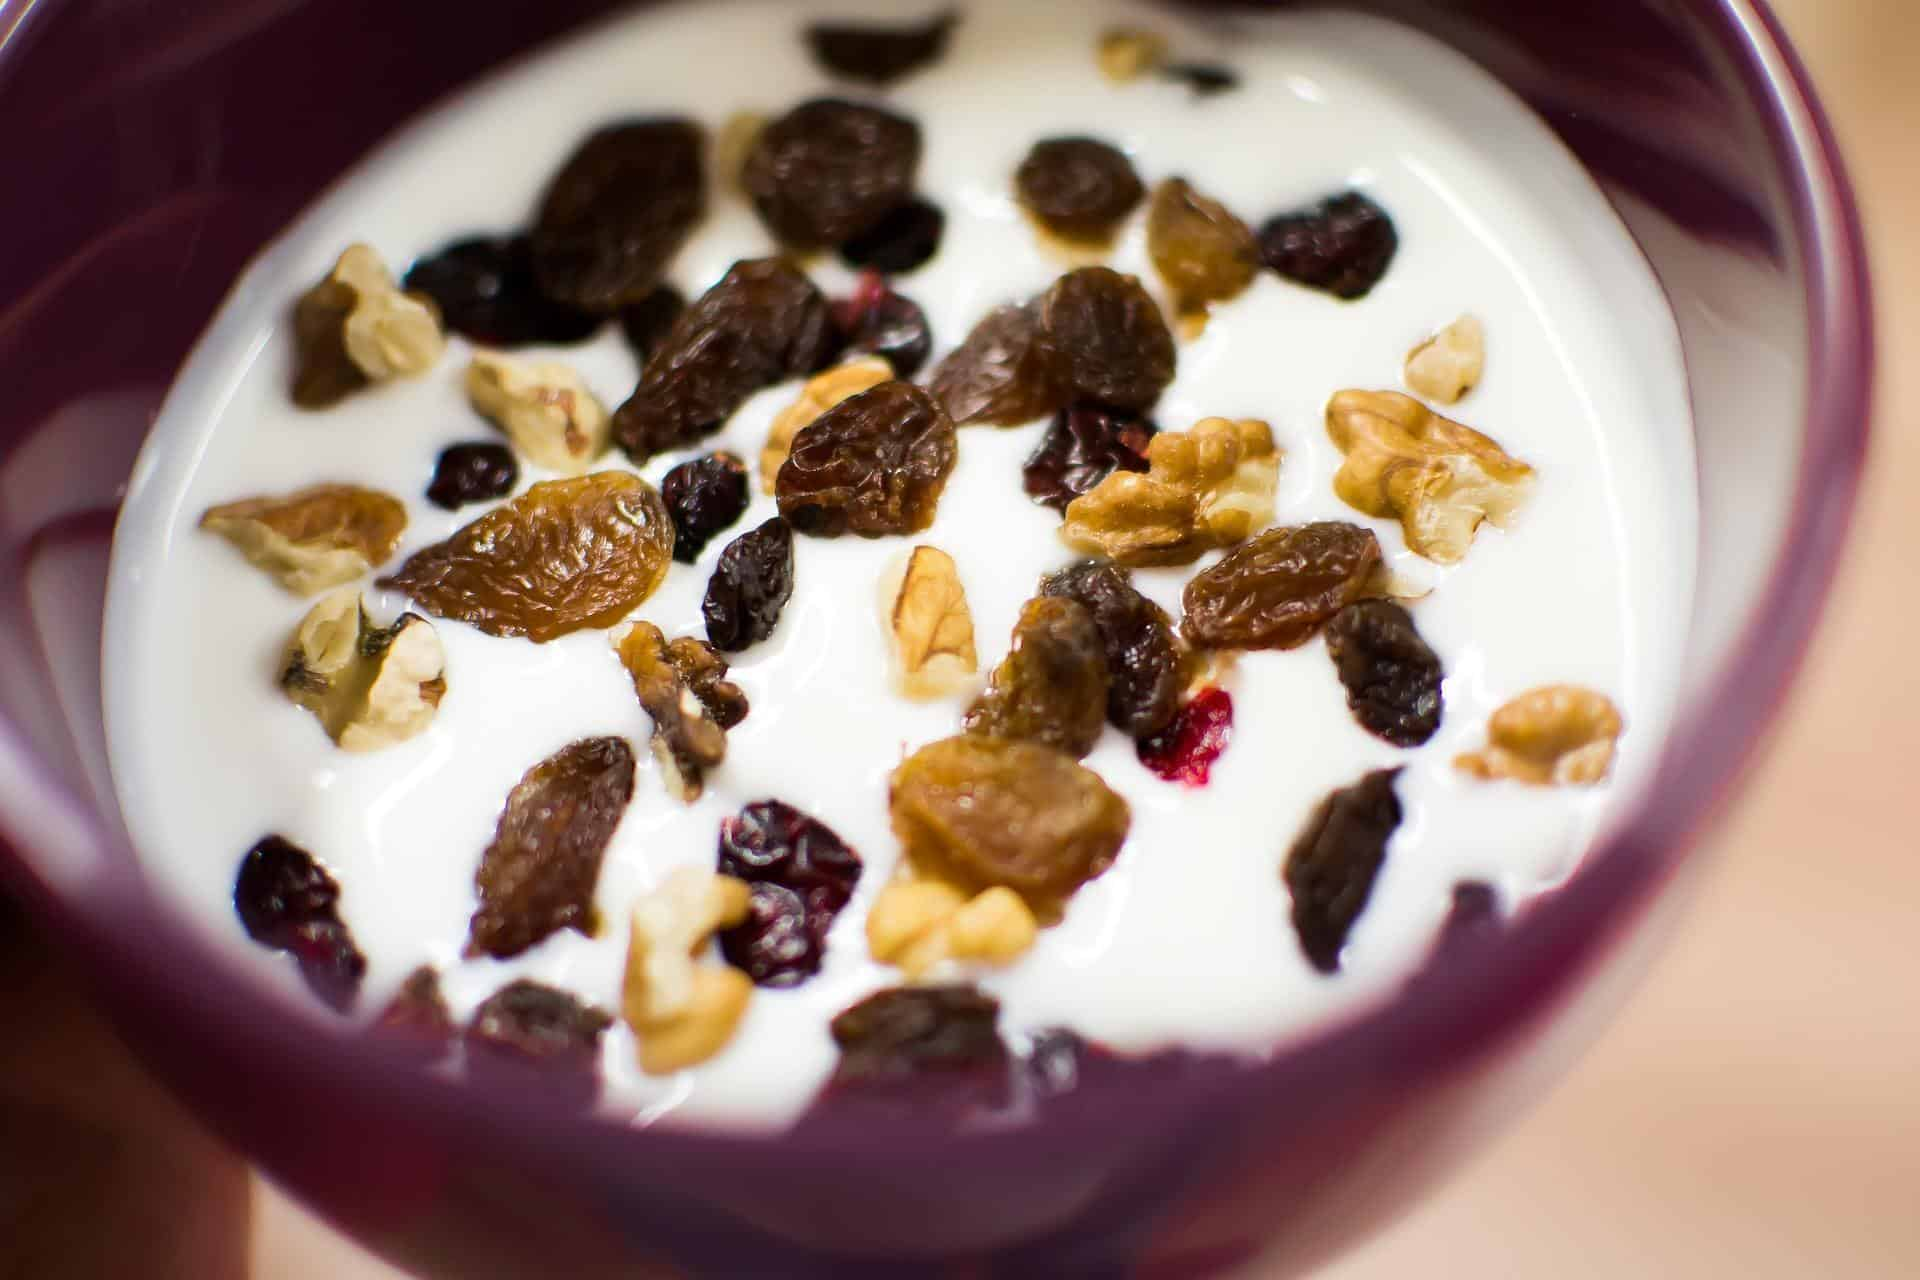 Yoghurt naturally helps to reduce hunger